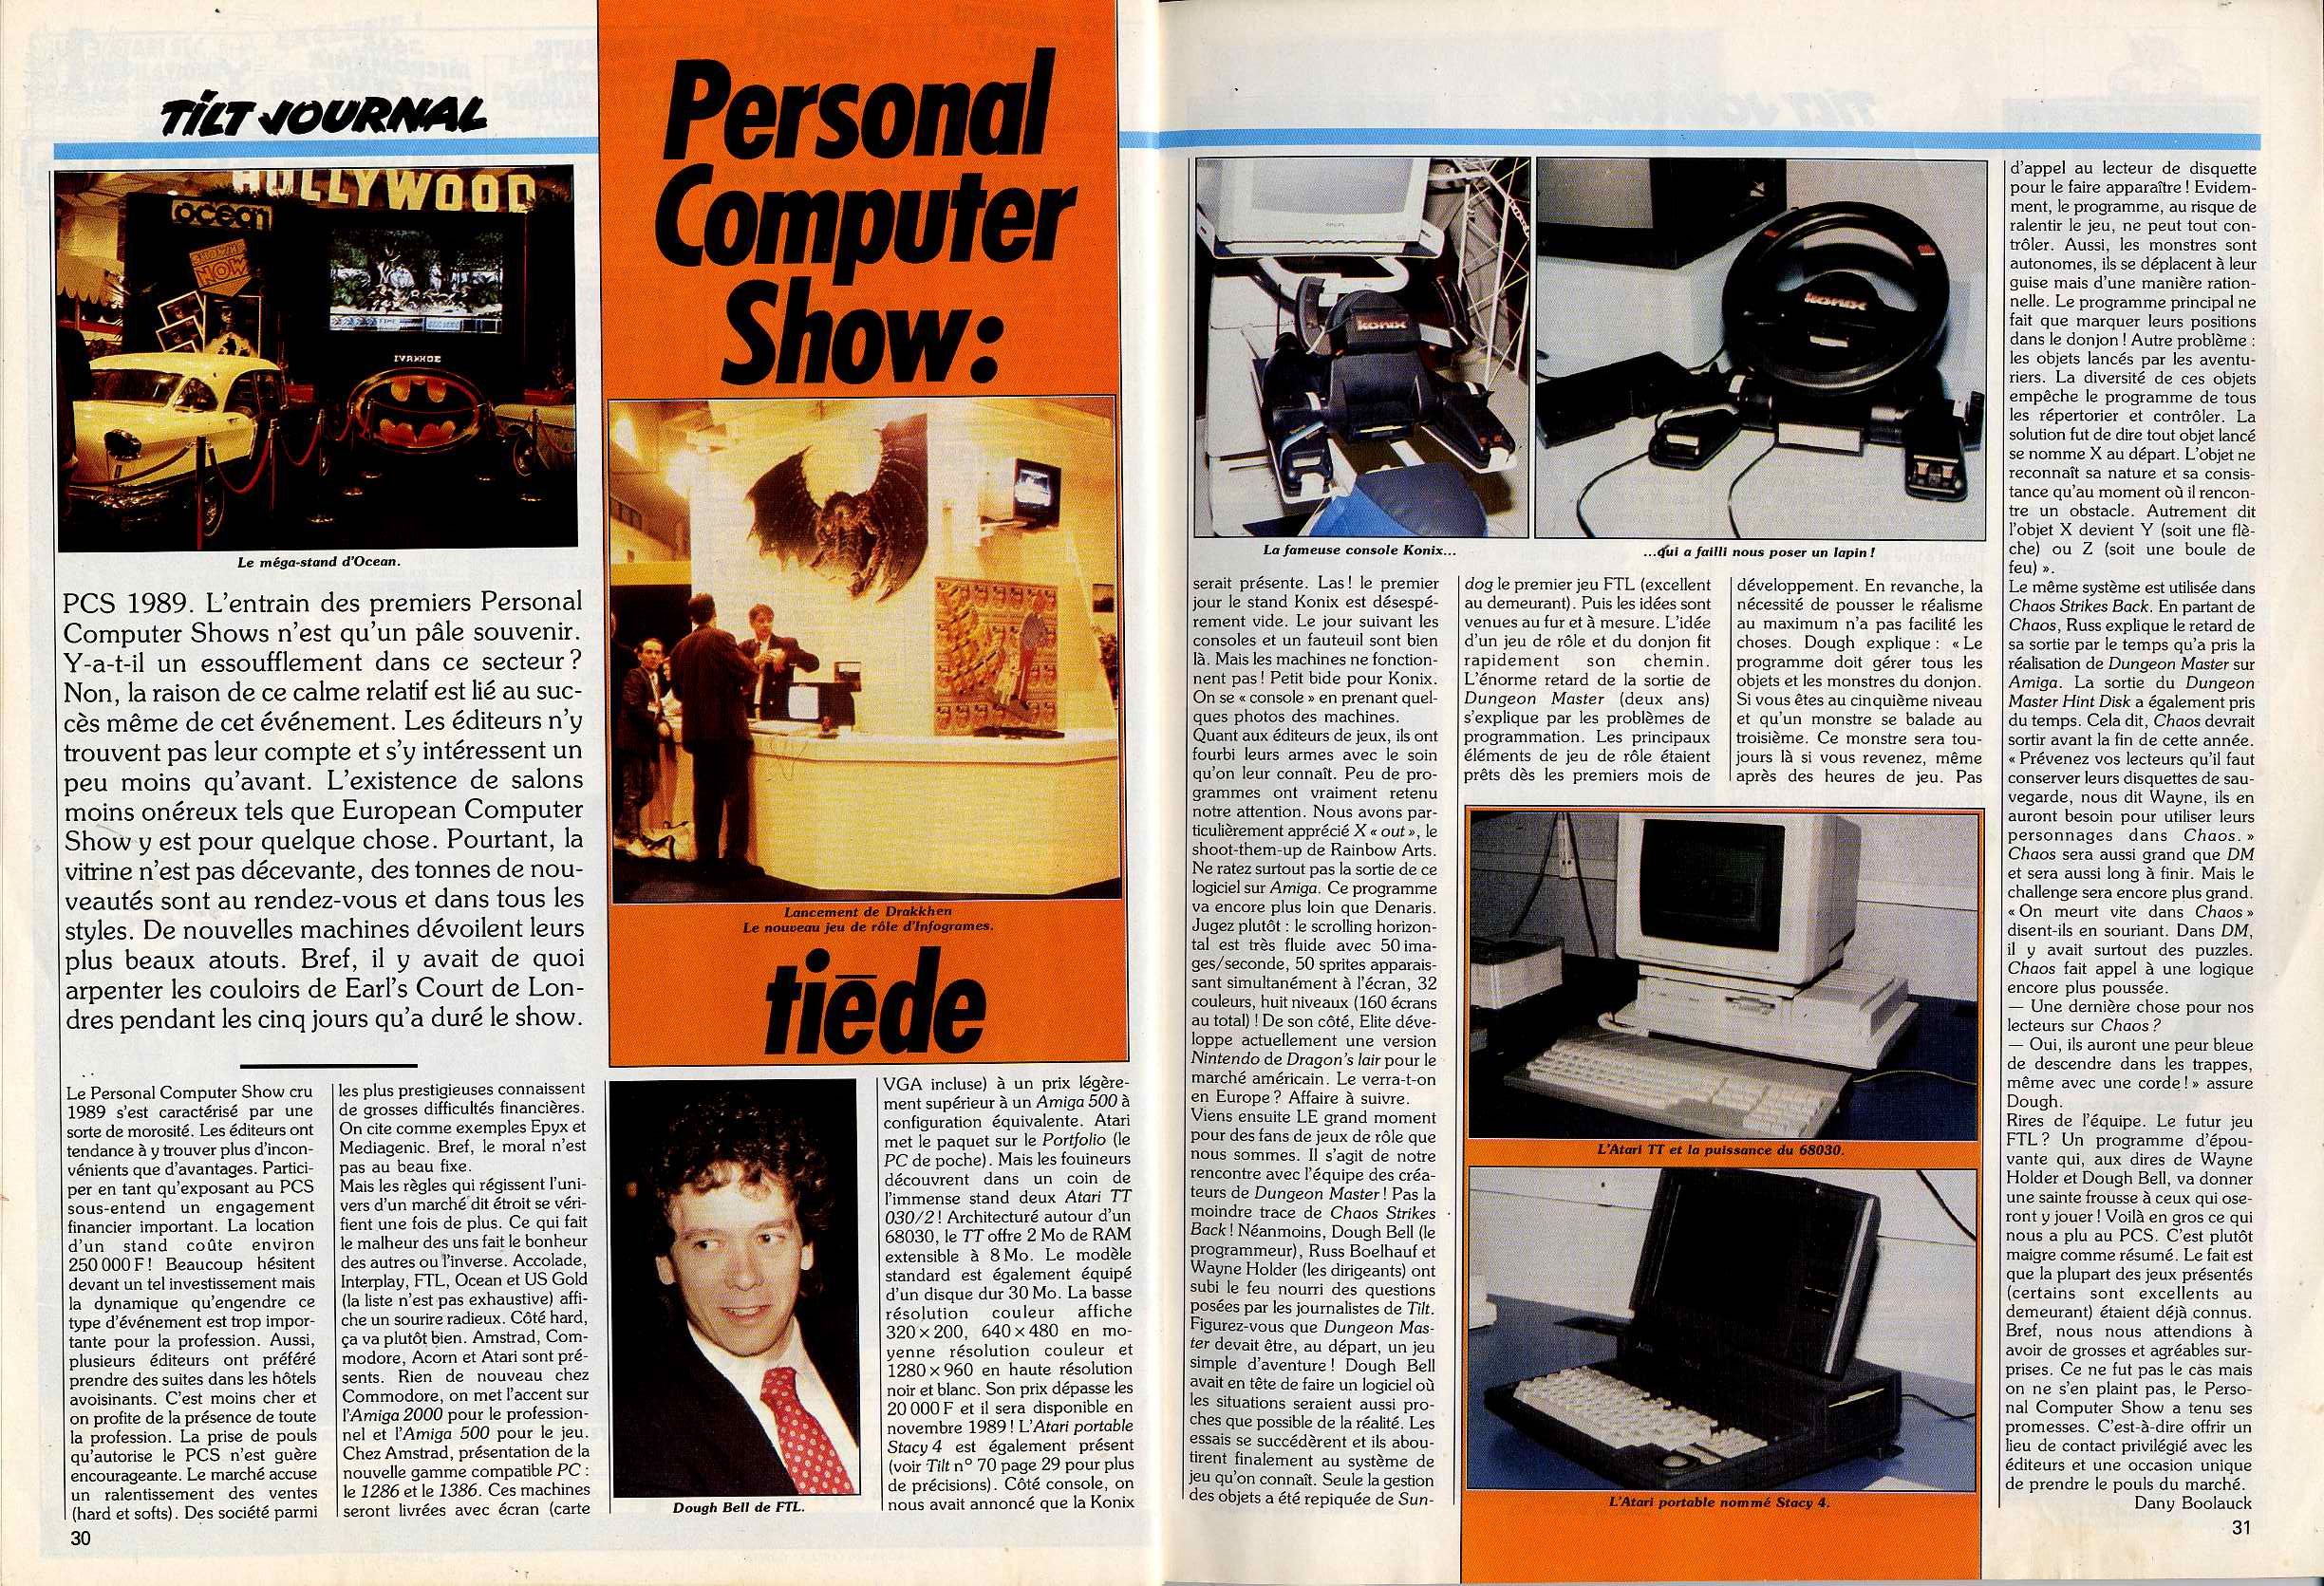 Interview of Doug Bell (with a photo) published in French TILT Magazine 71 (November 1989) on pages 30-31